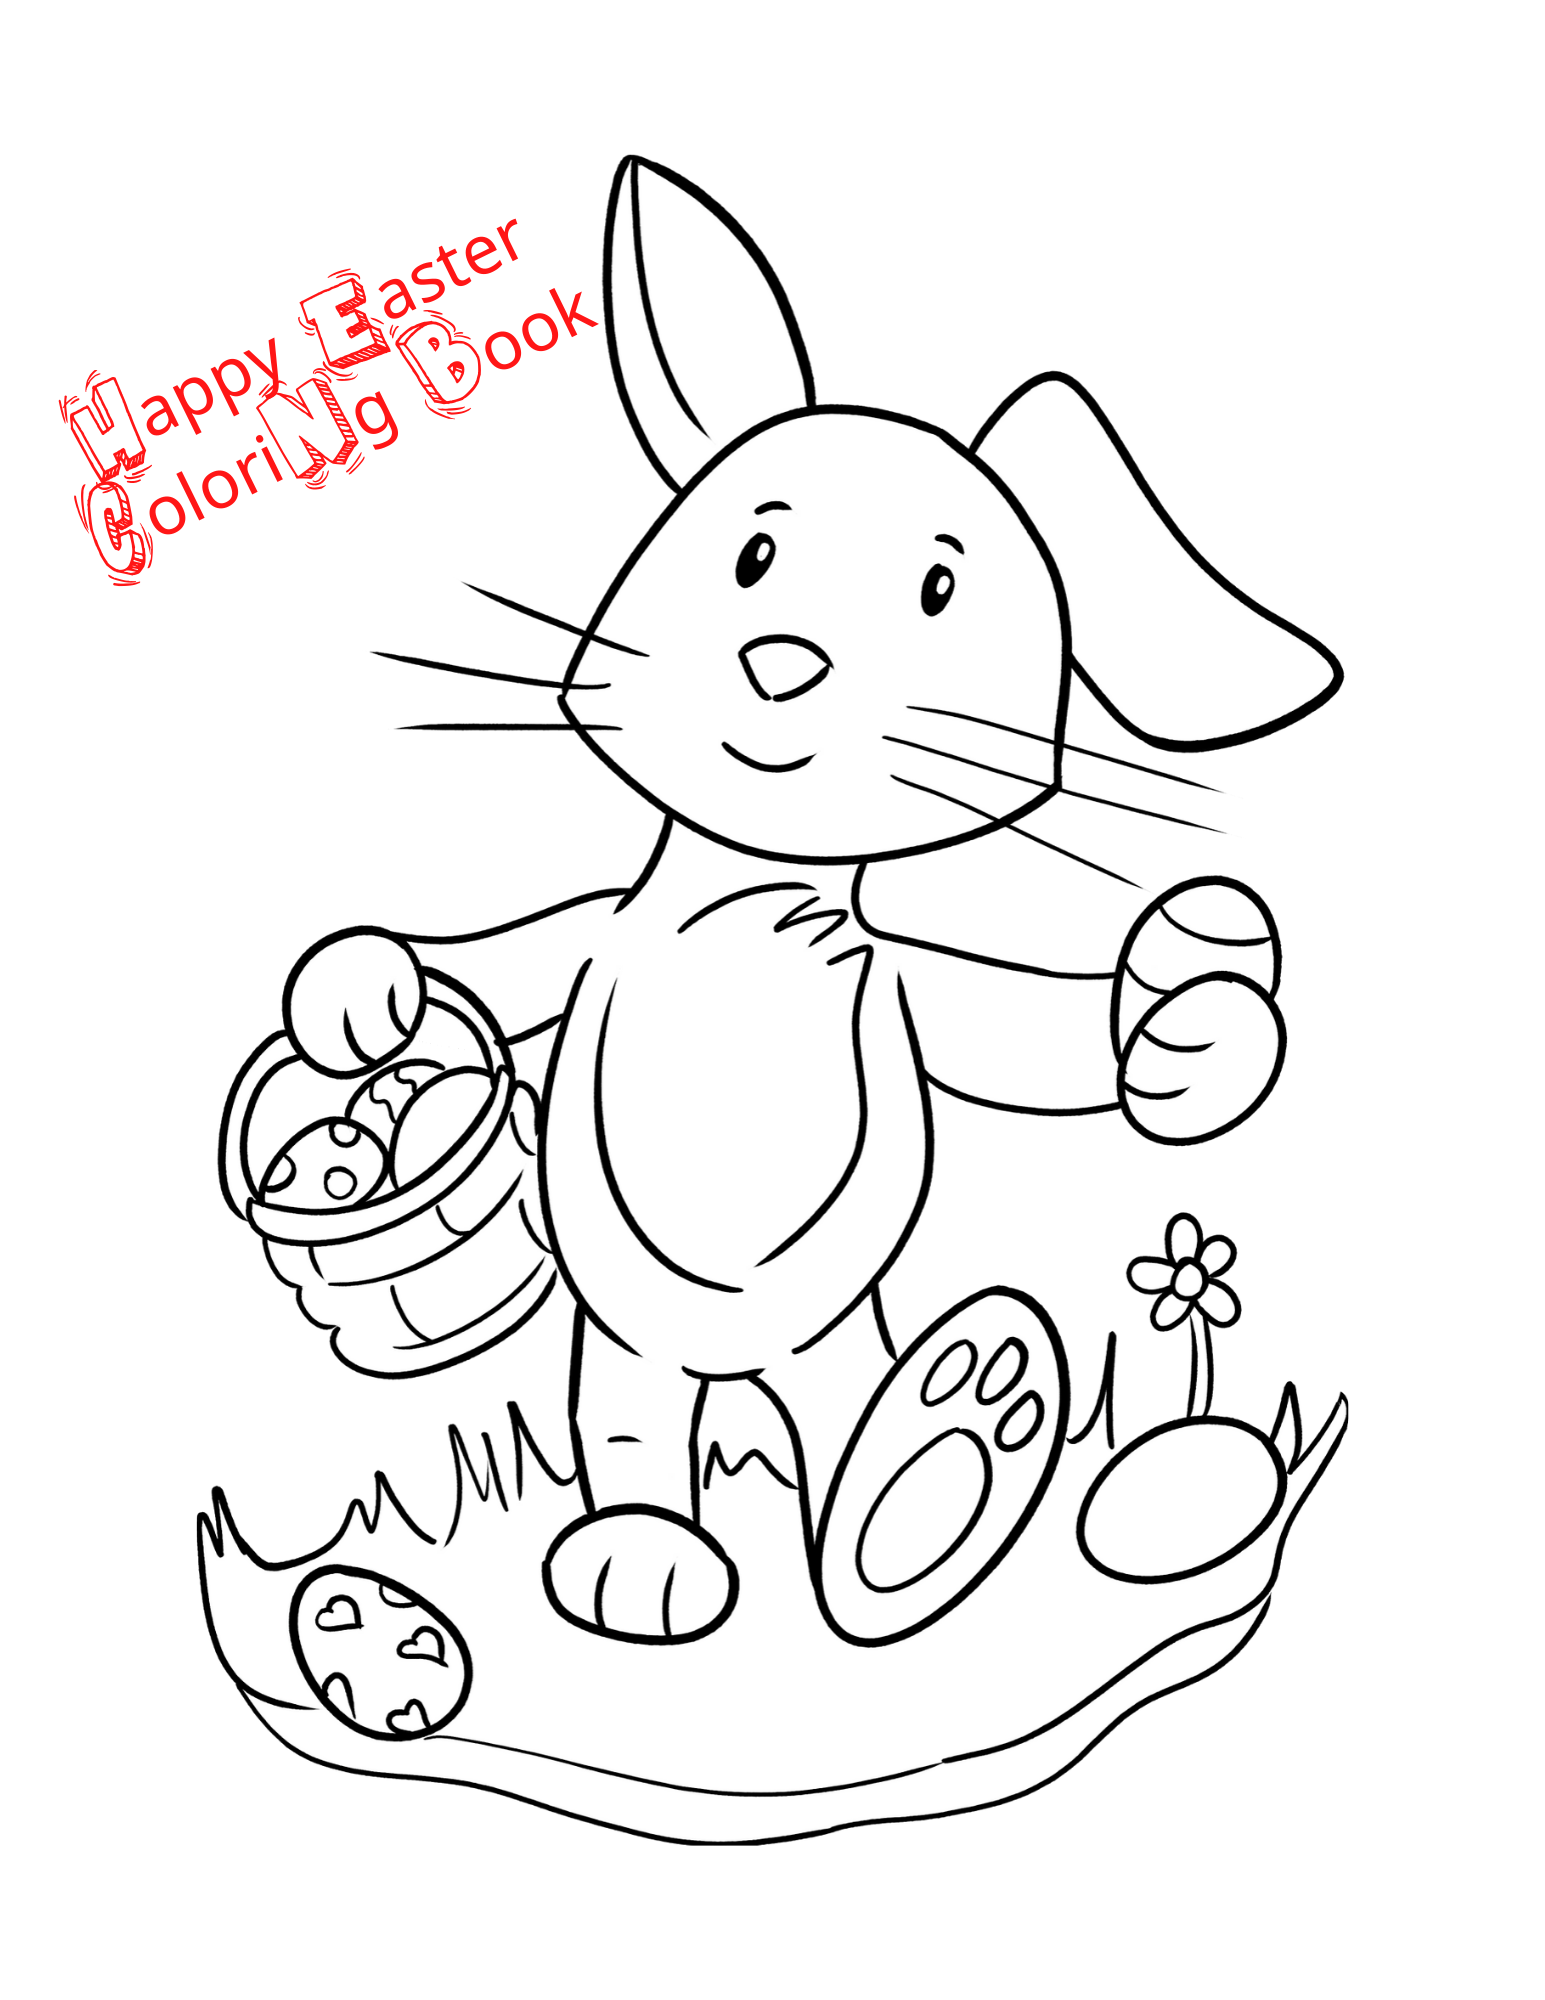 Easter Coloring Book For Kids Toddler Coloring Book Bunny Coloring Pages Easter Coloring Book